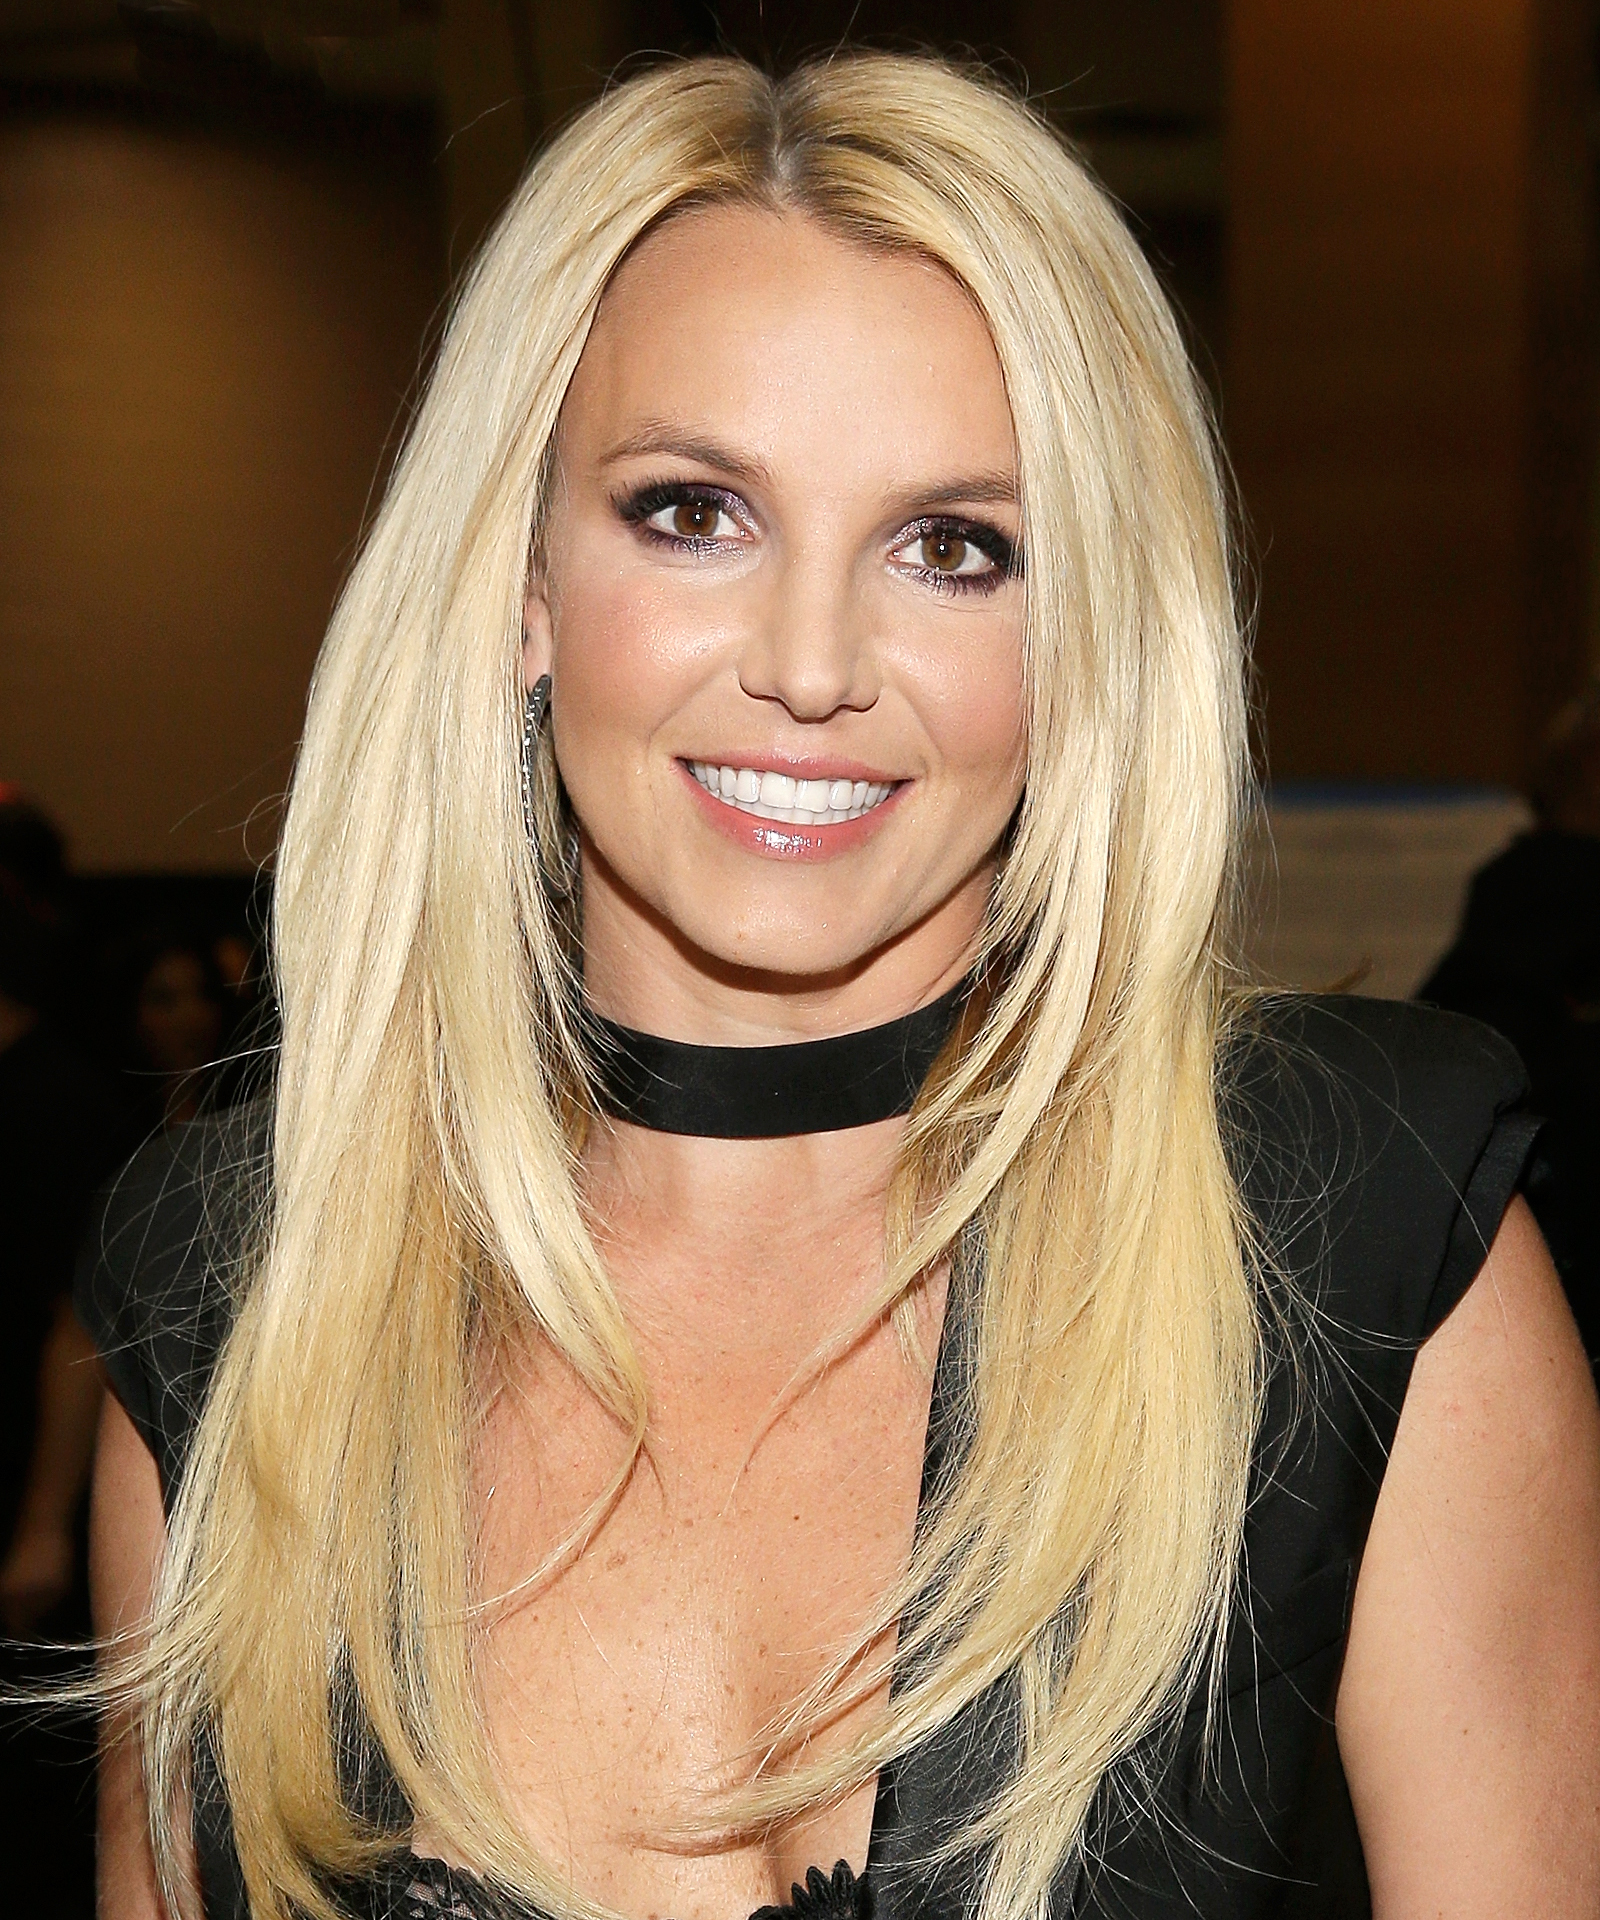 100716-britney-spears_0_0_1_0